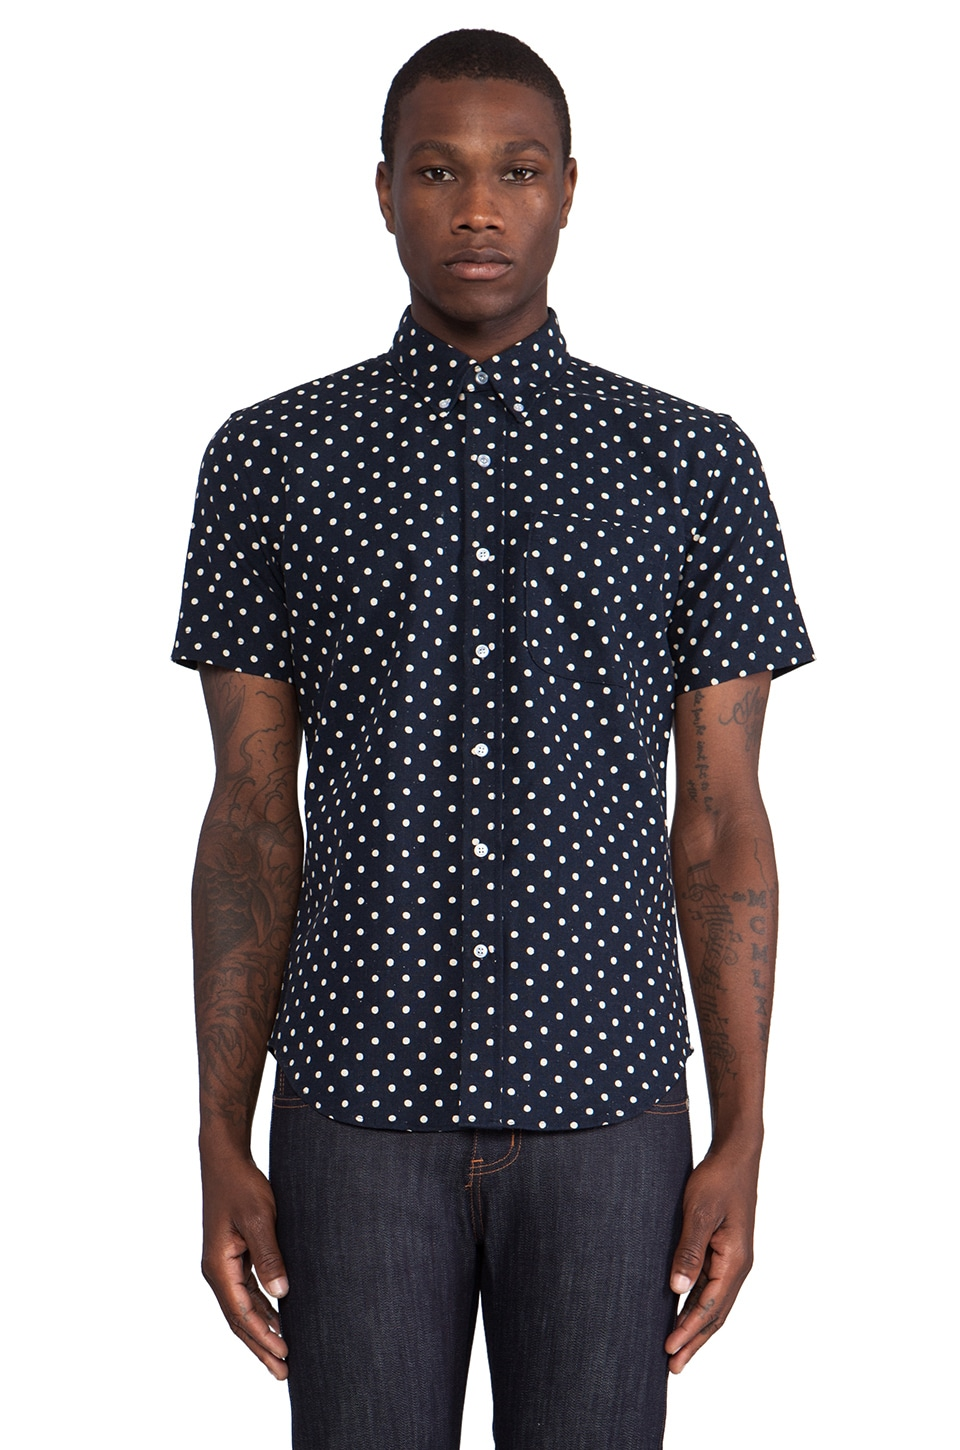 United Stock Dry Goods Large Polka Dot Button Down in Navy & Natural